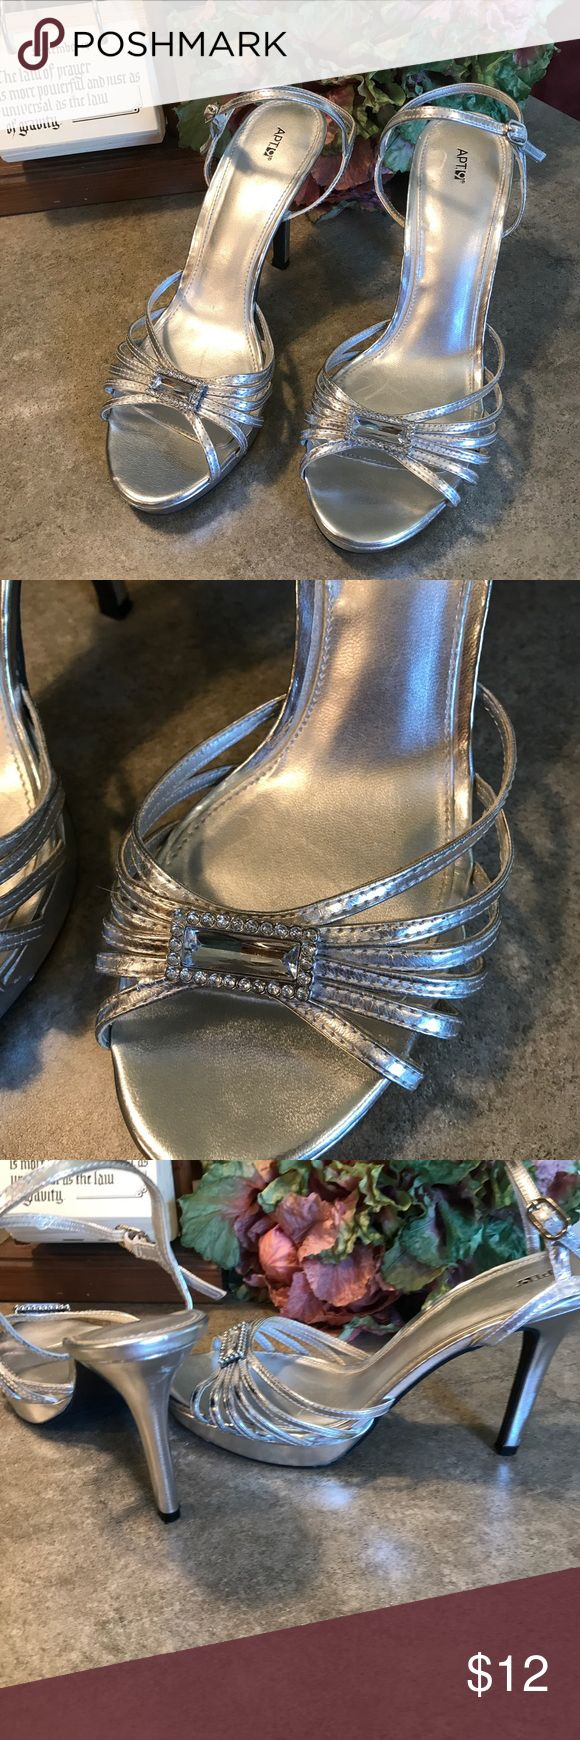 "APT. 9 These lovely Silver heels are ready to party. Used but worn only a few times. Great for the Prom!! One heel does have a small scuff mark. Unnoticeable heels are 4"". The size is not marked on shoe the store did not have the box but said they were a size 8 Ladies. Shoes Heels"